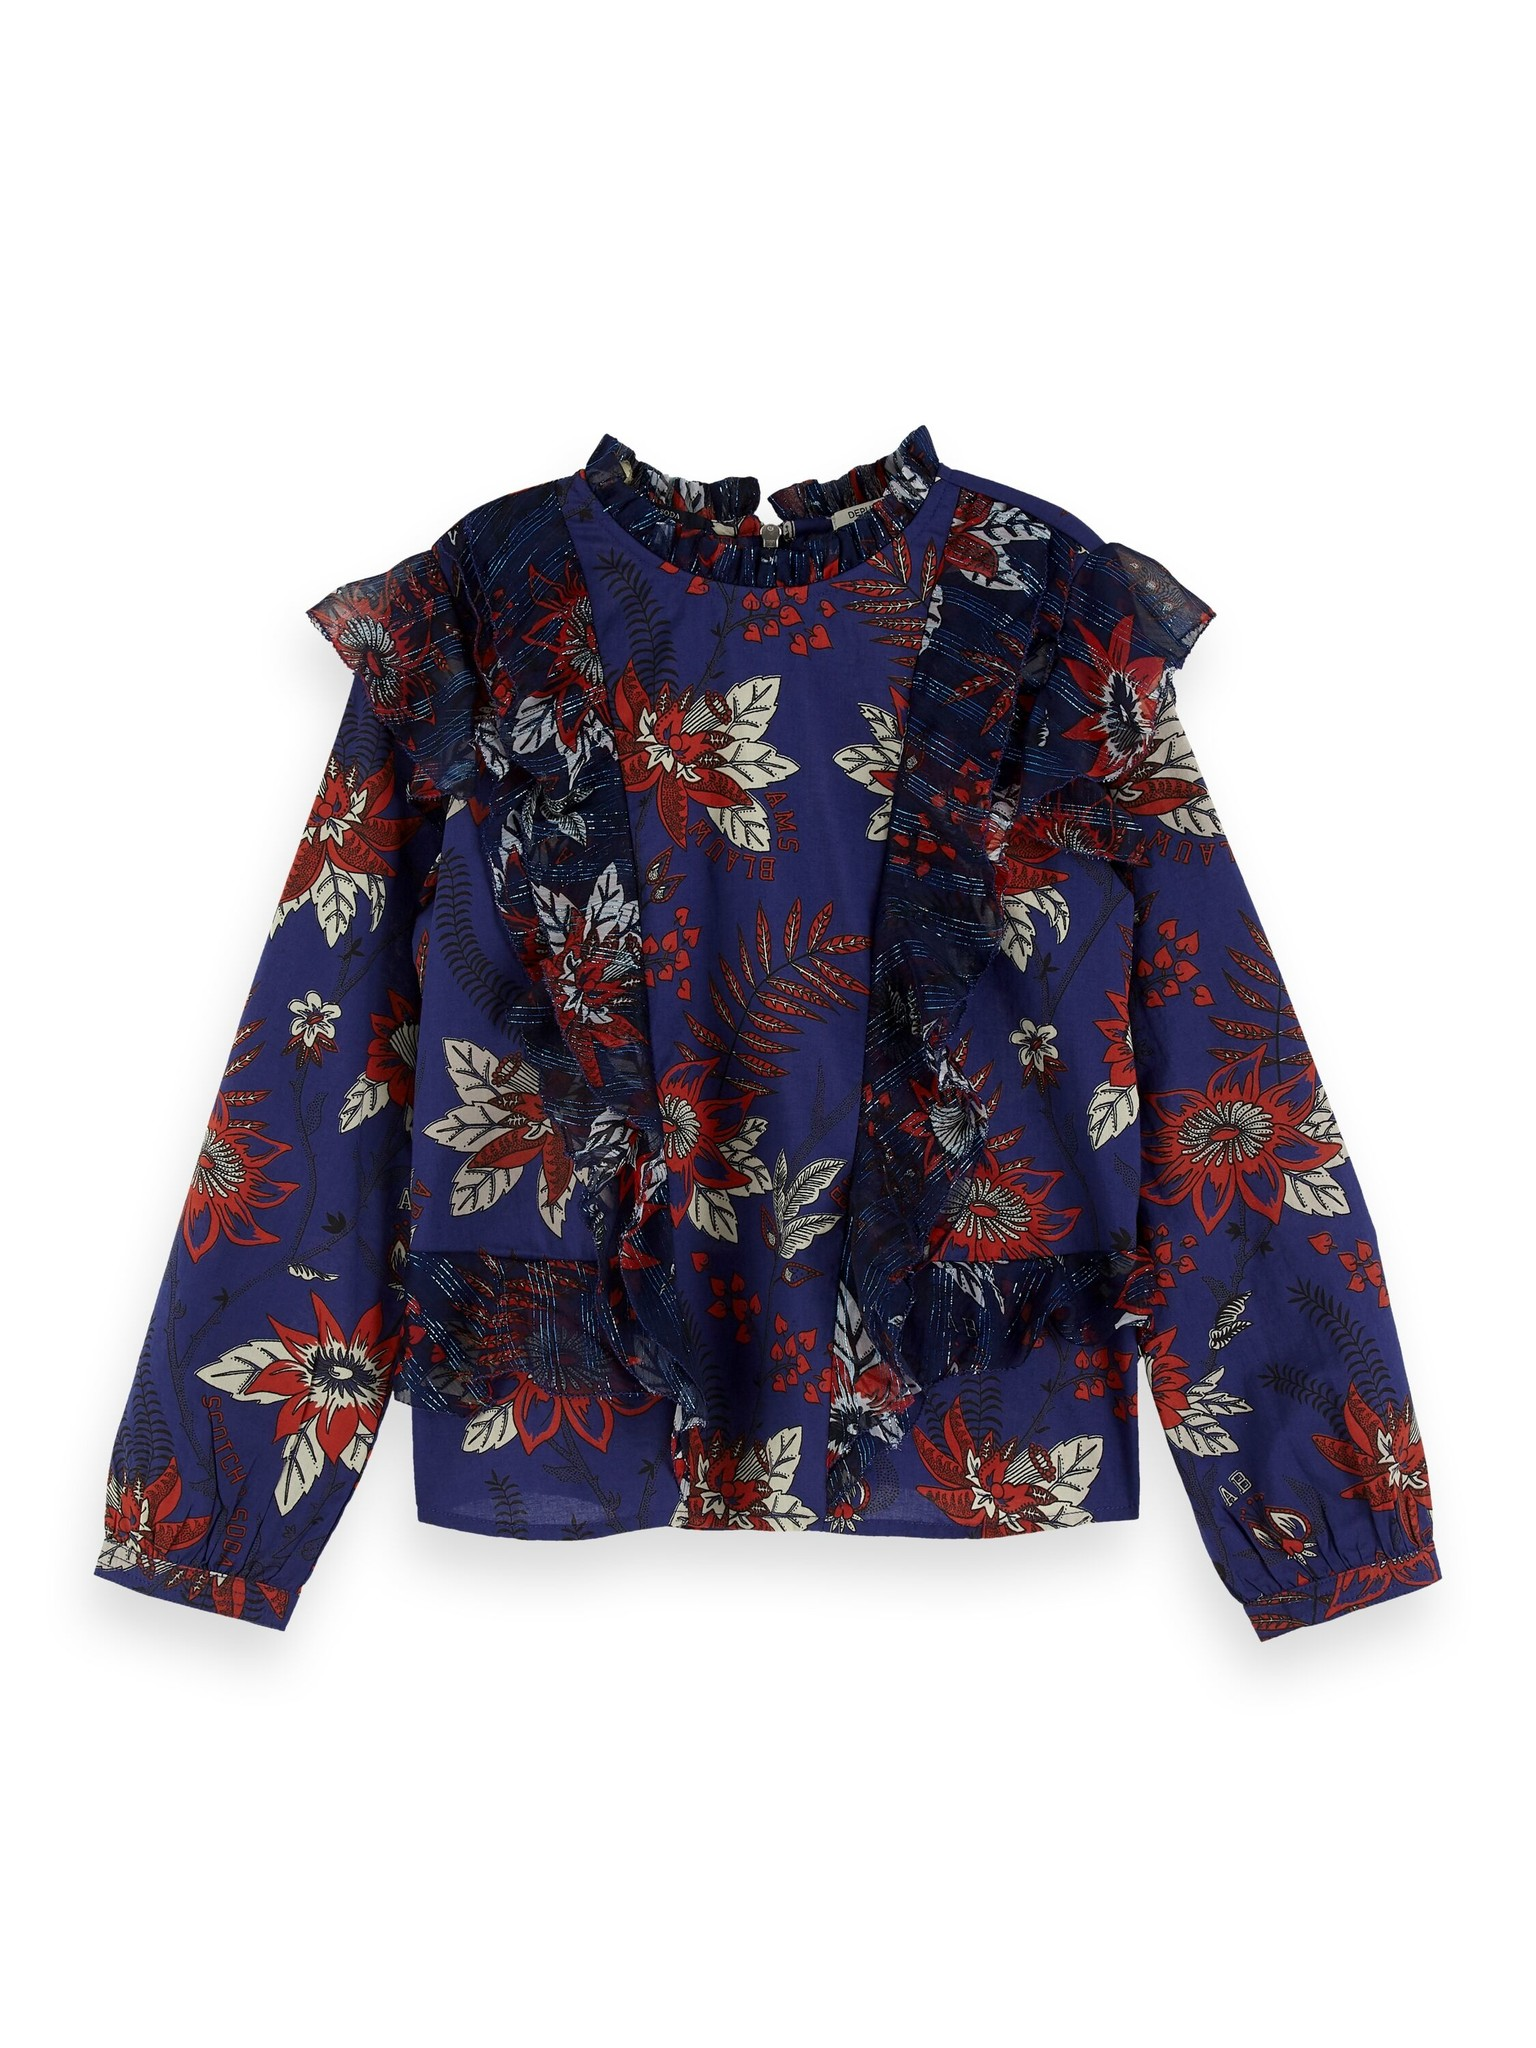 Scotch & Soda Floral allover printed top with ruffle details 154192 / 0218